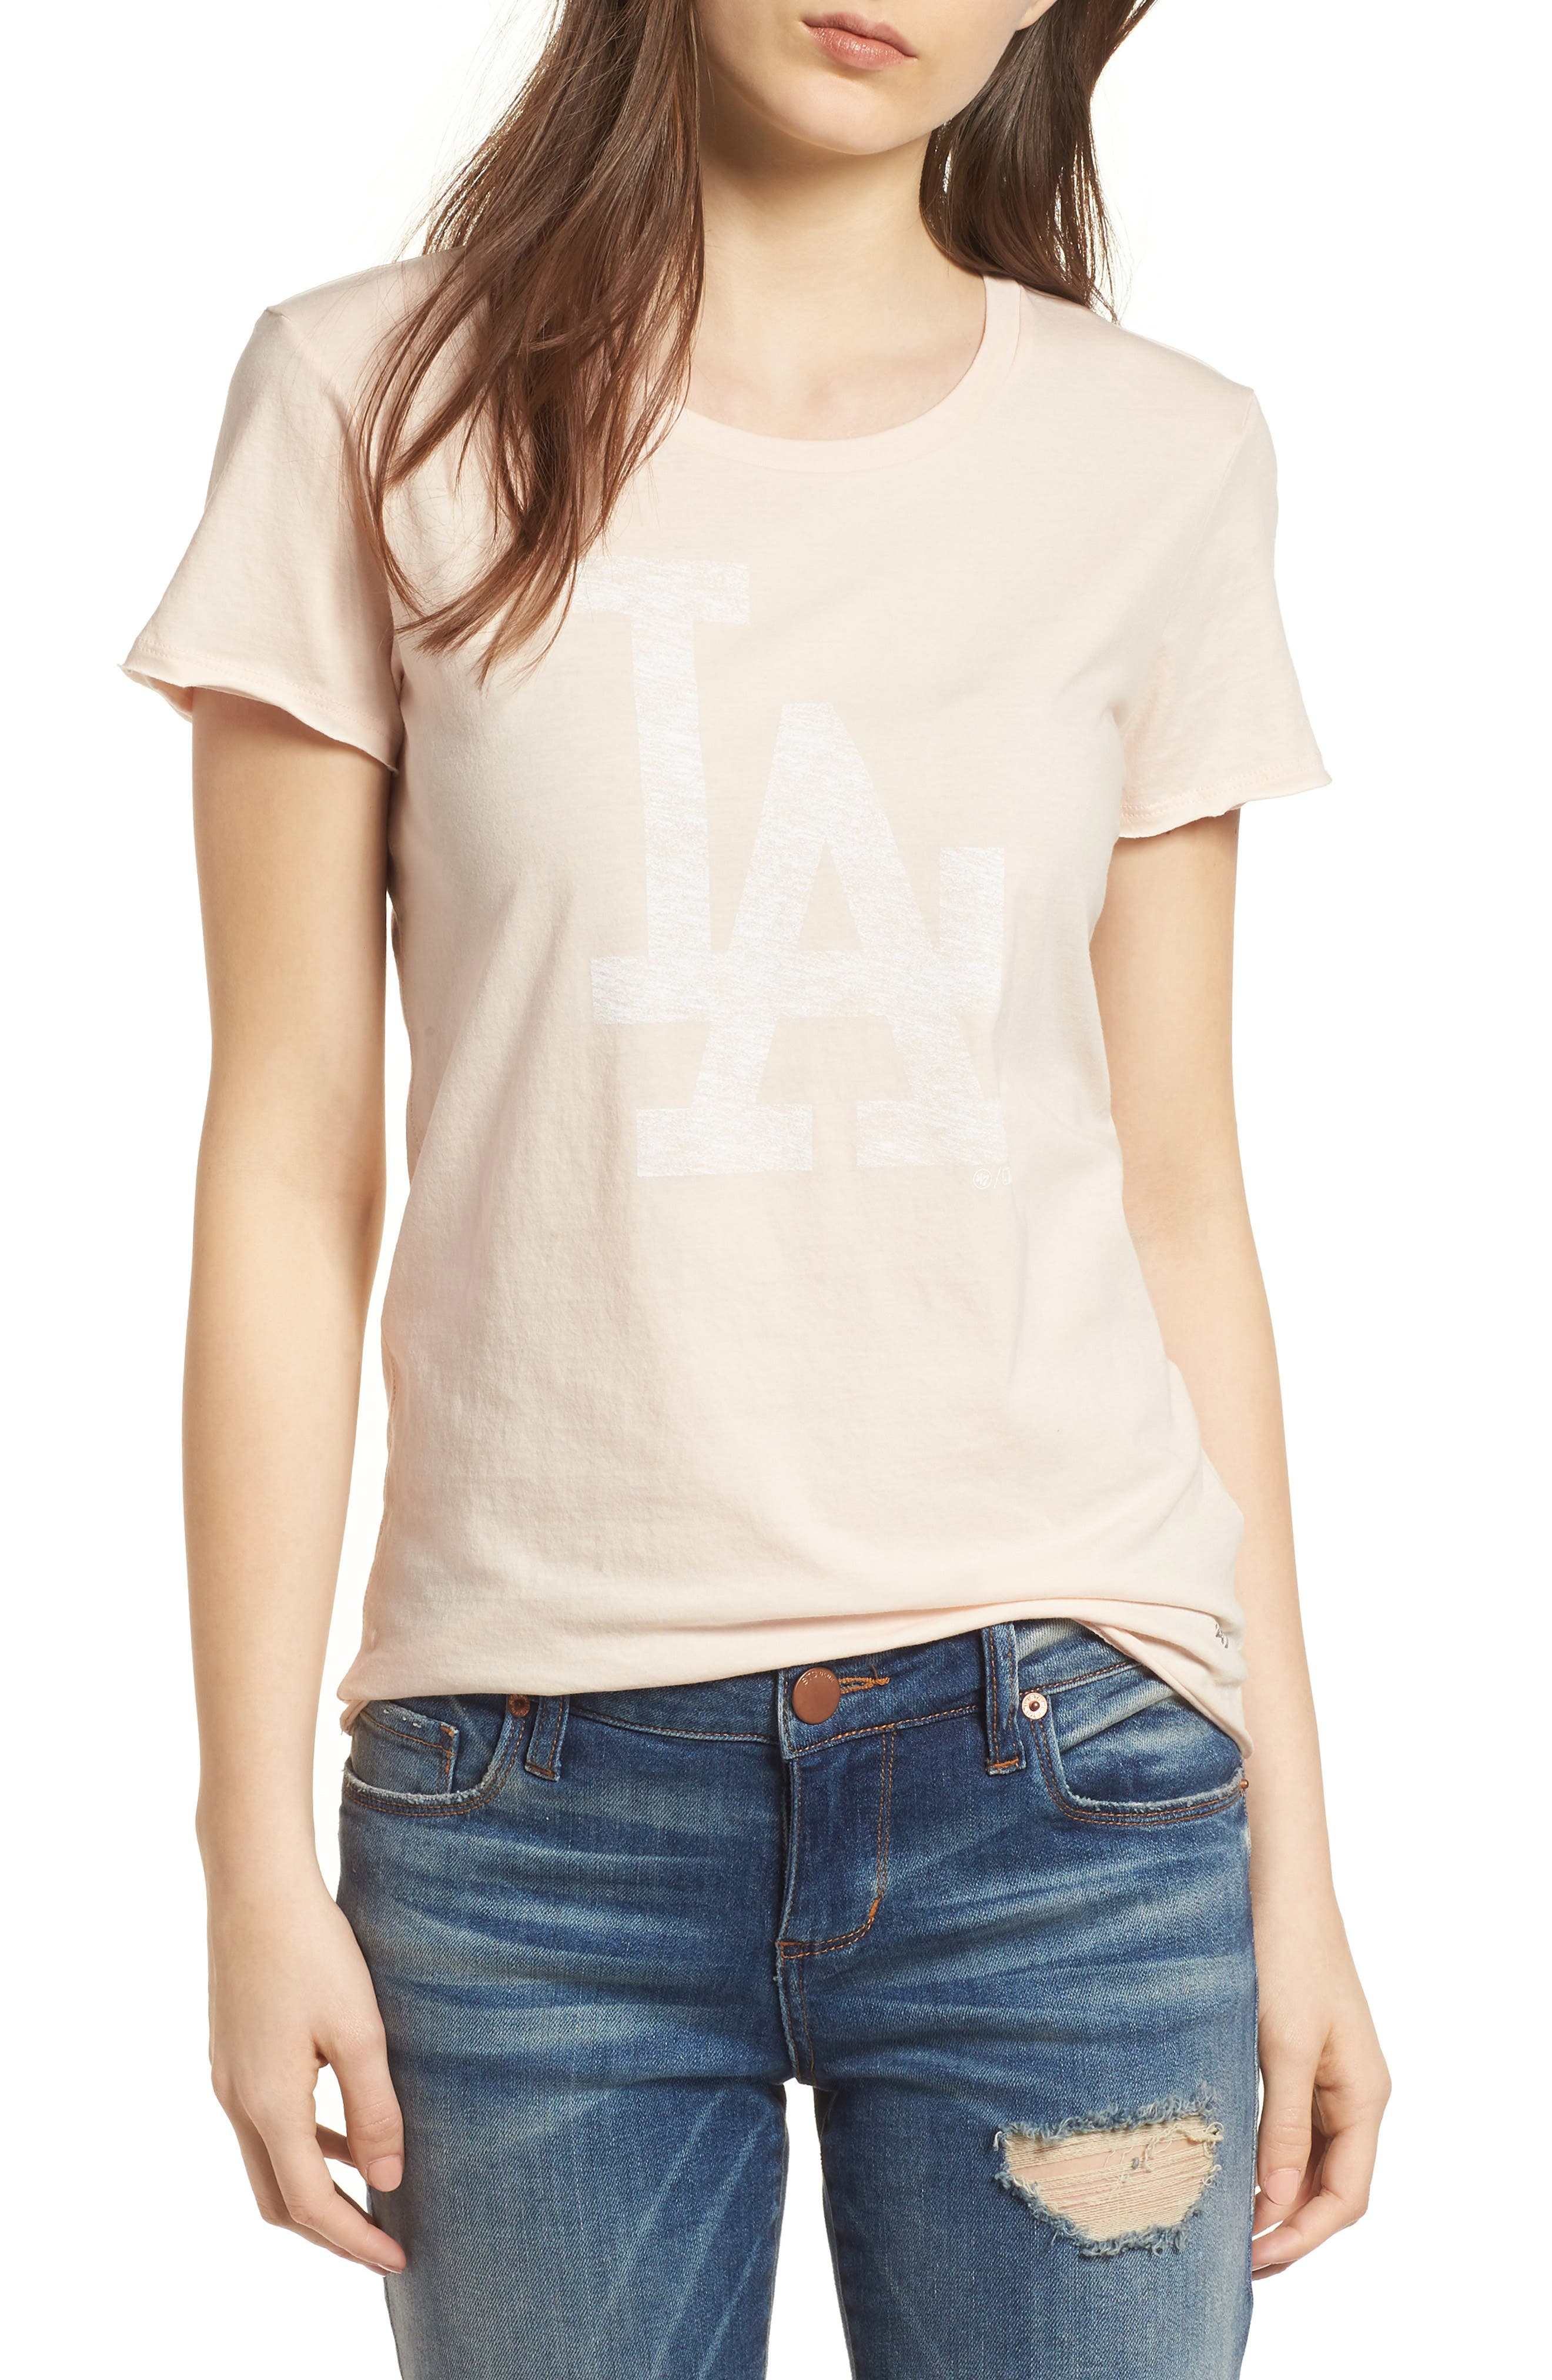 Los Angeles Dodgers Fader Letter Tee,                             Main thumbnail 1, color,                             Blush